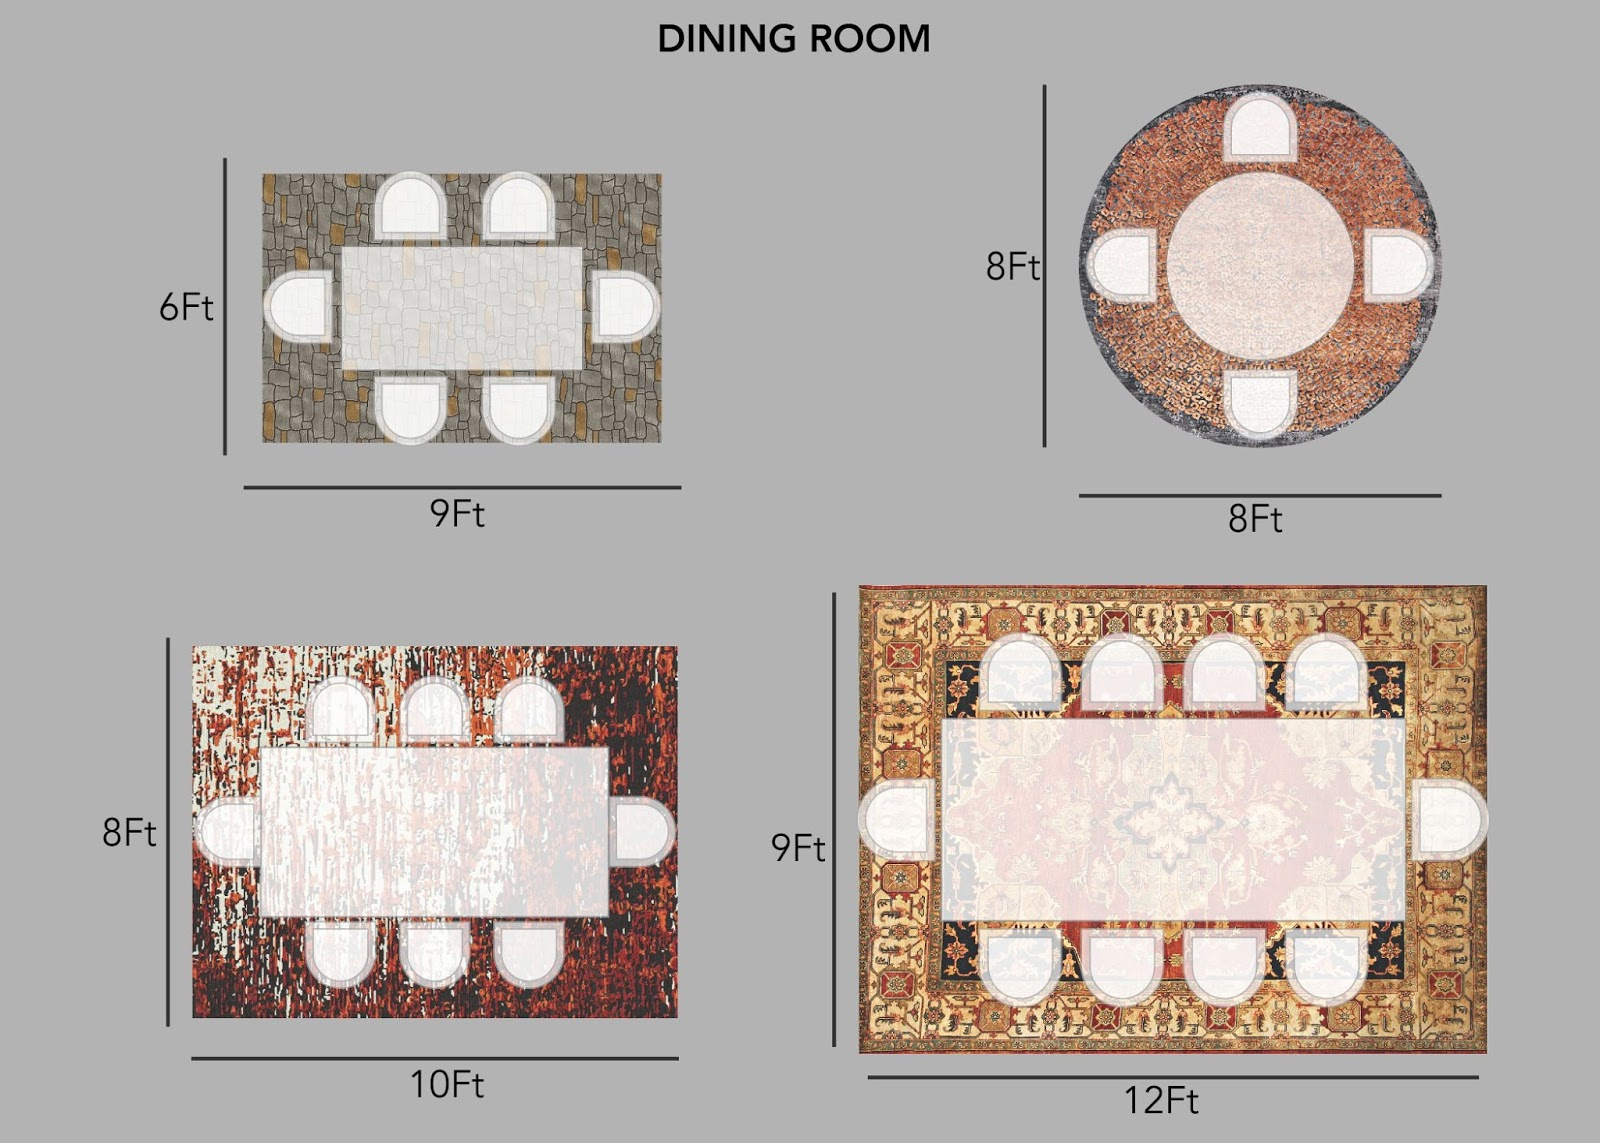 Choosing the Right Rug Size for Dining Room (Part - III)